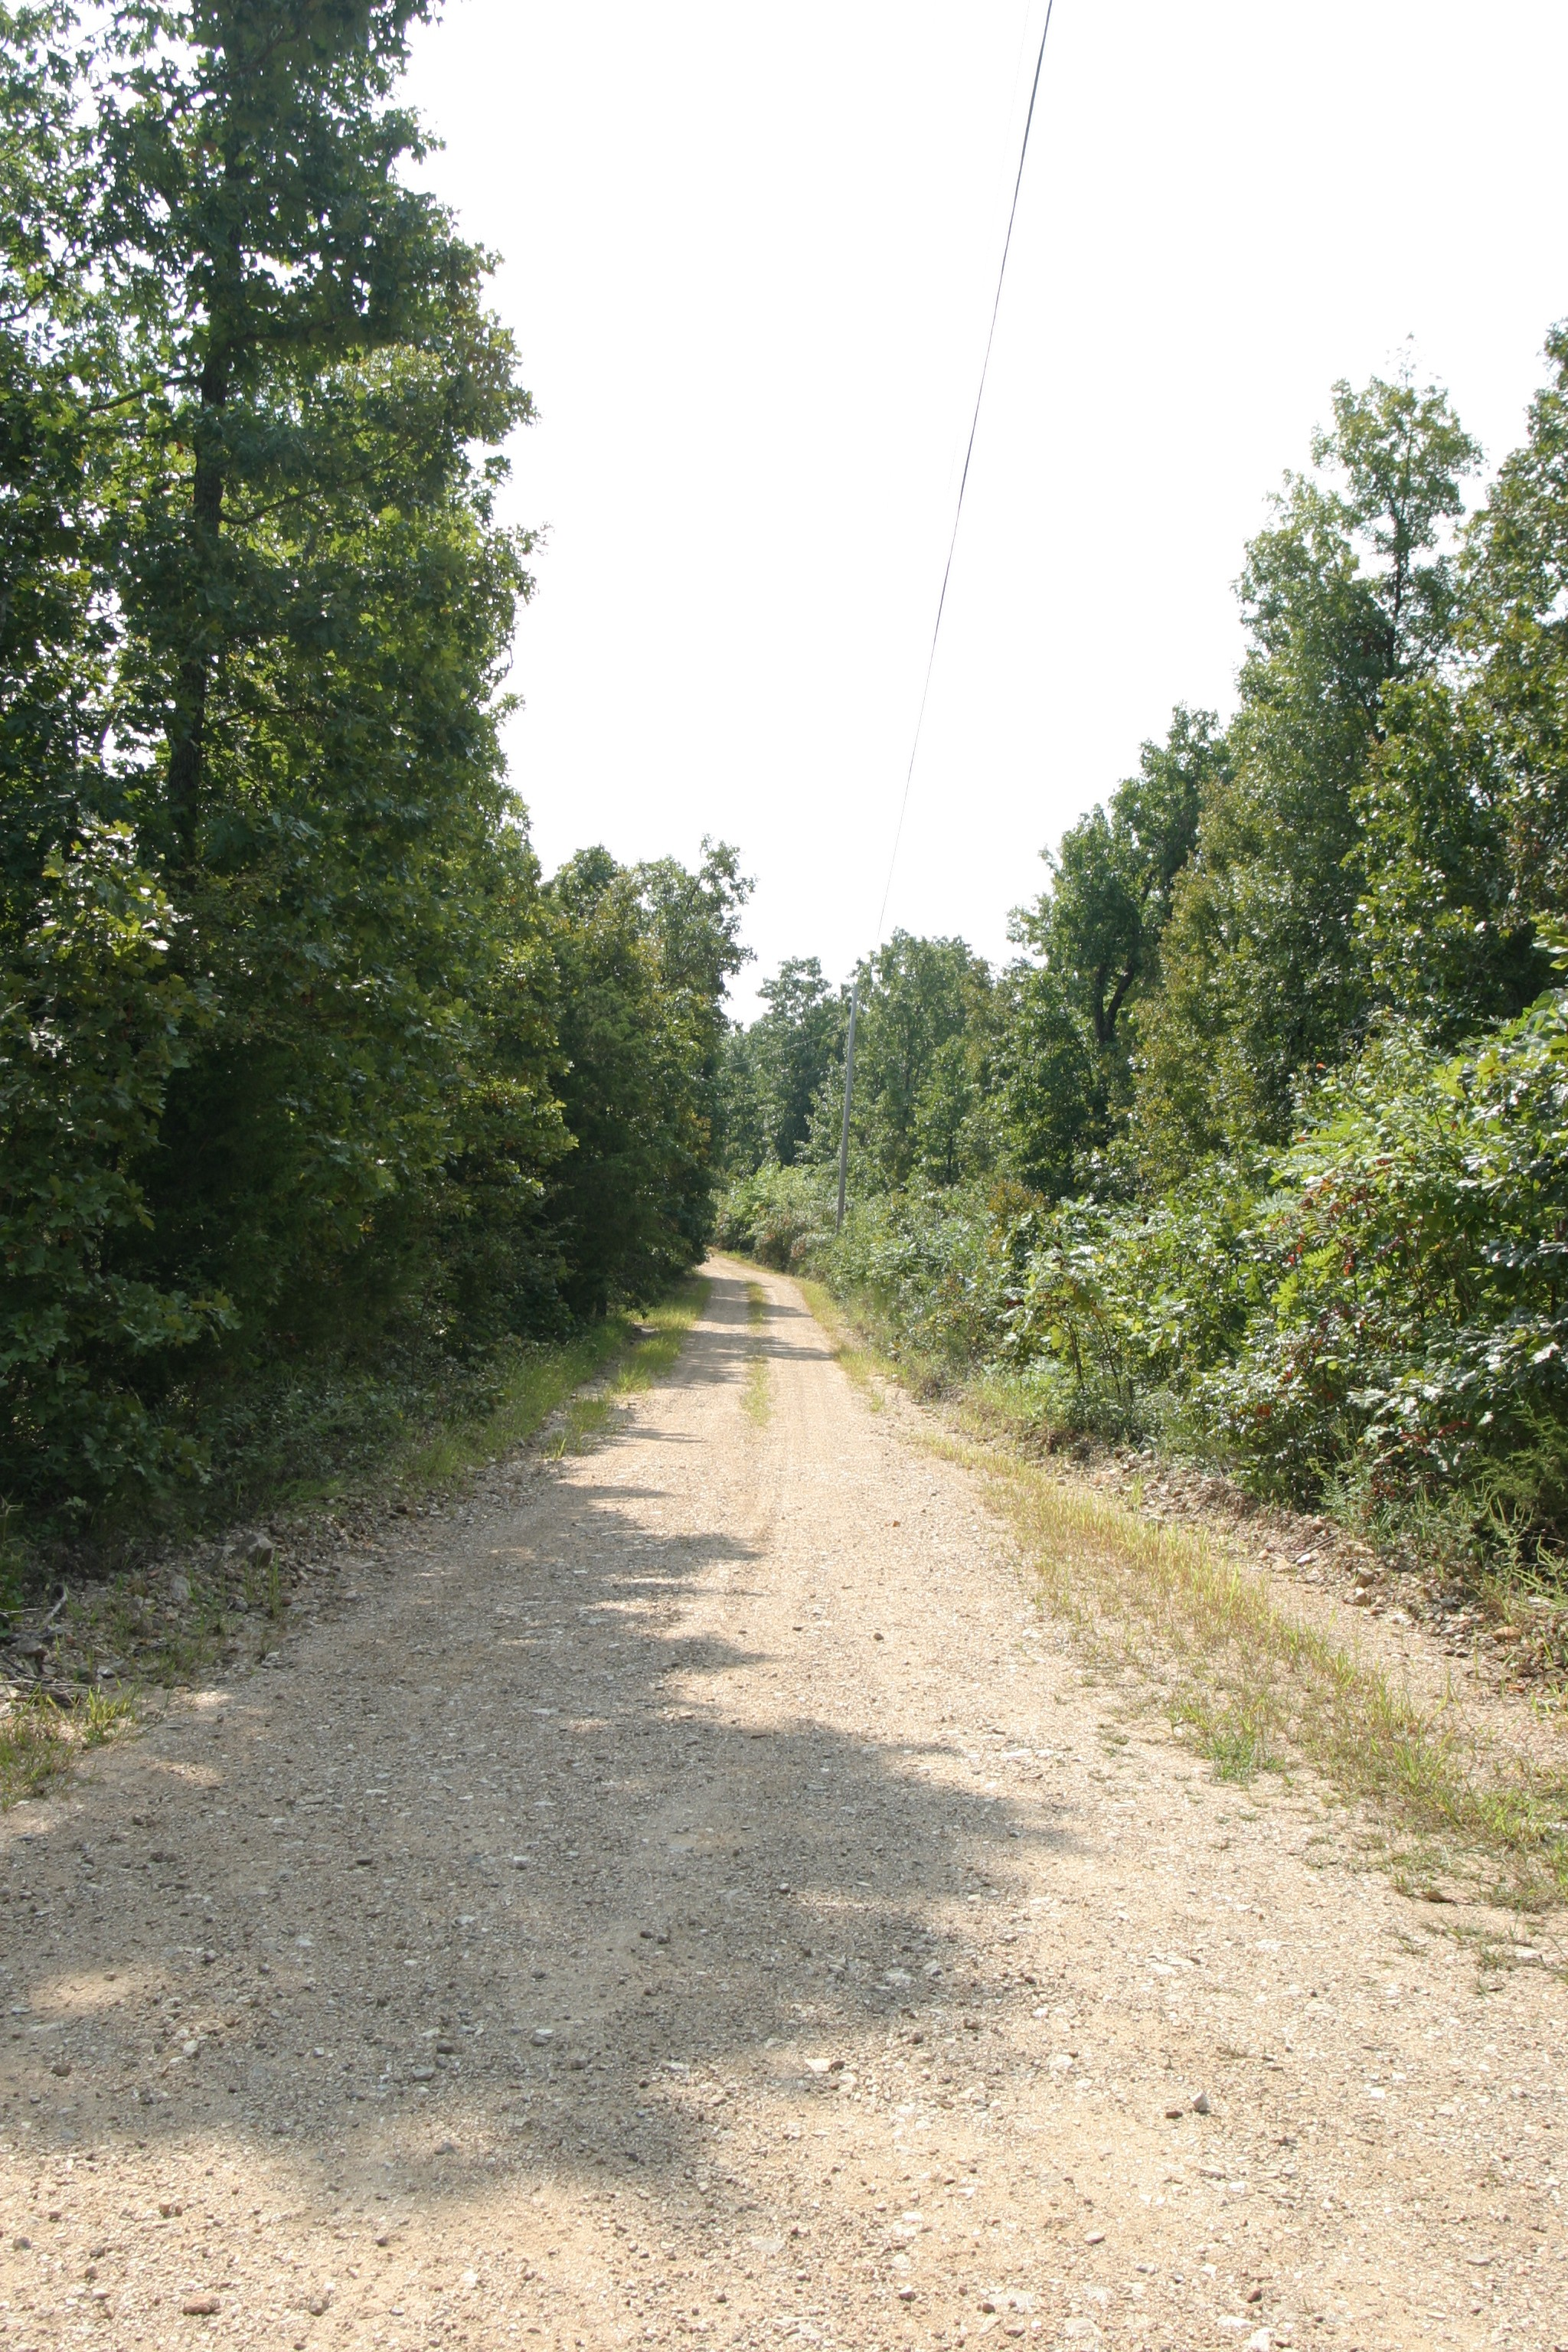 This portion of our road may soon be developed